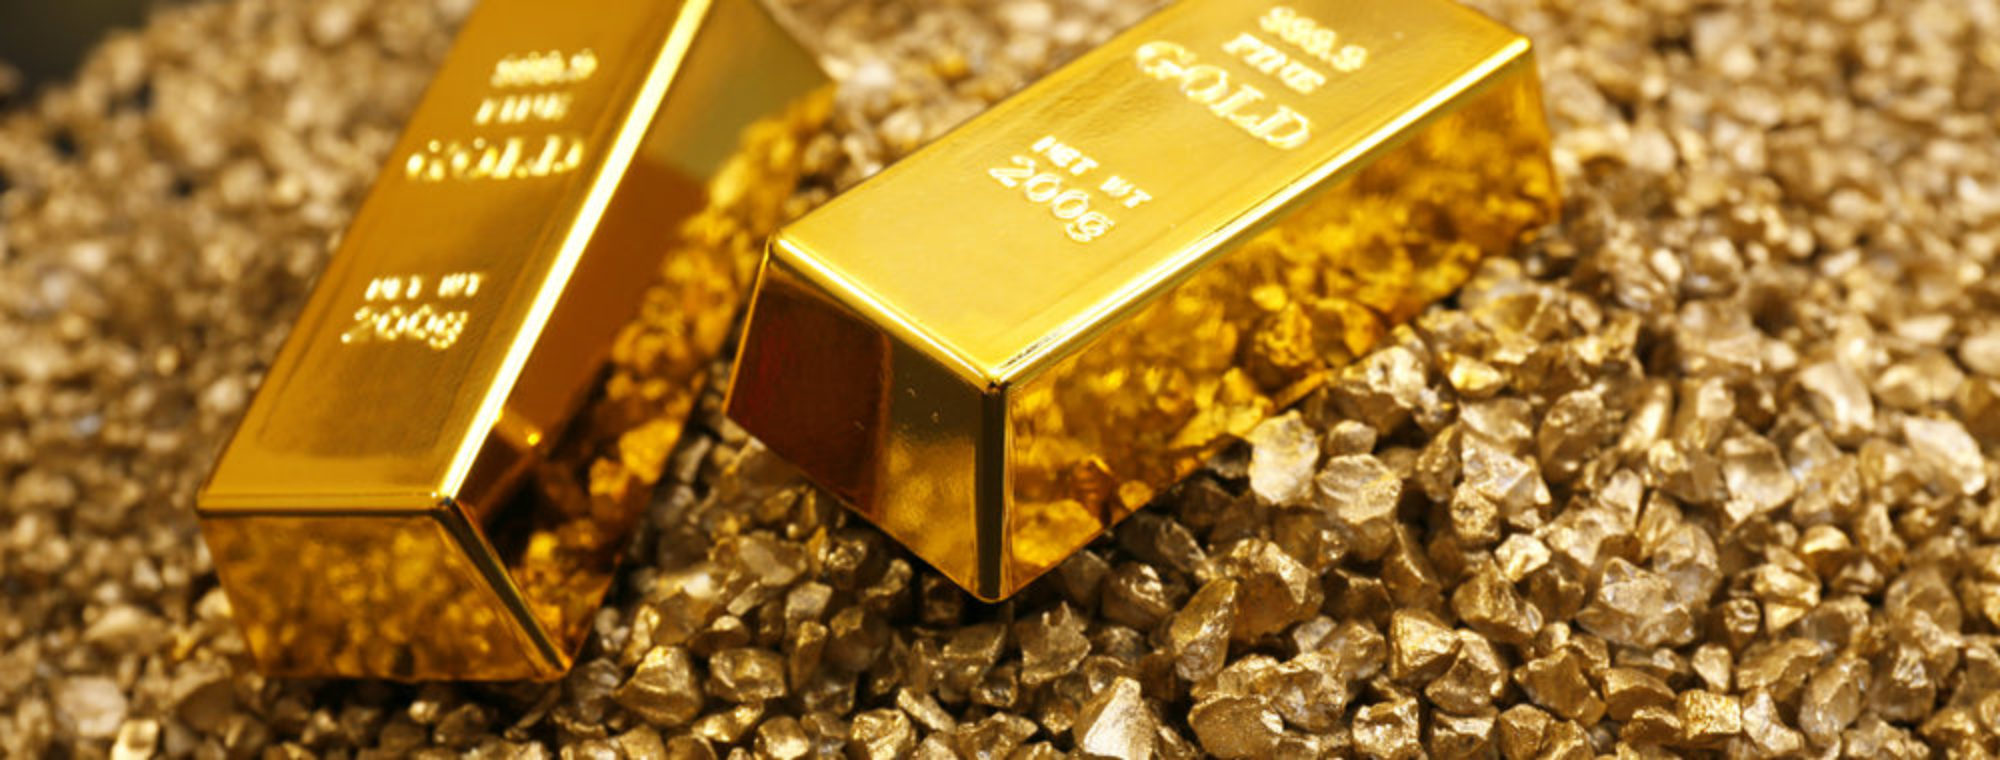 Will the gold mines shine again?